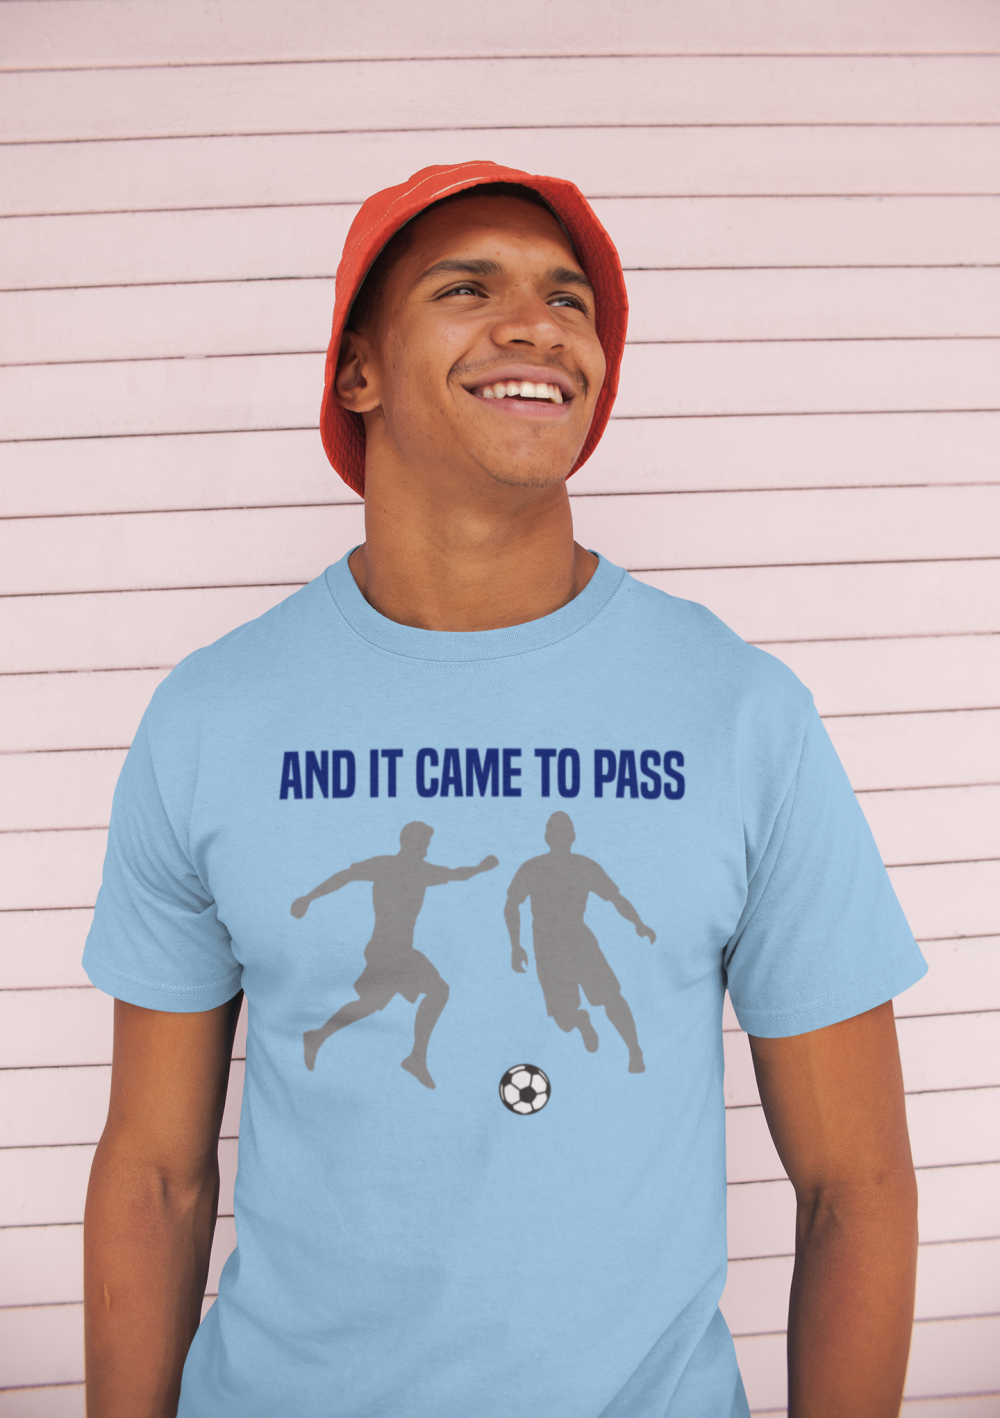 Came to Pass Soccer Mockup Funny LDS Shirt